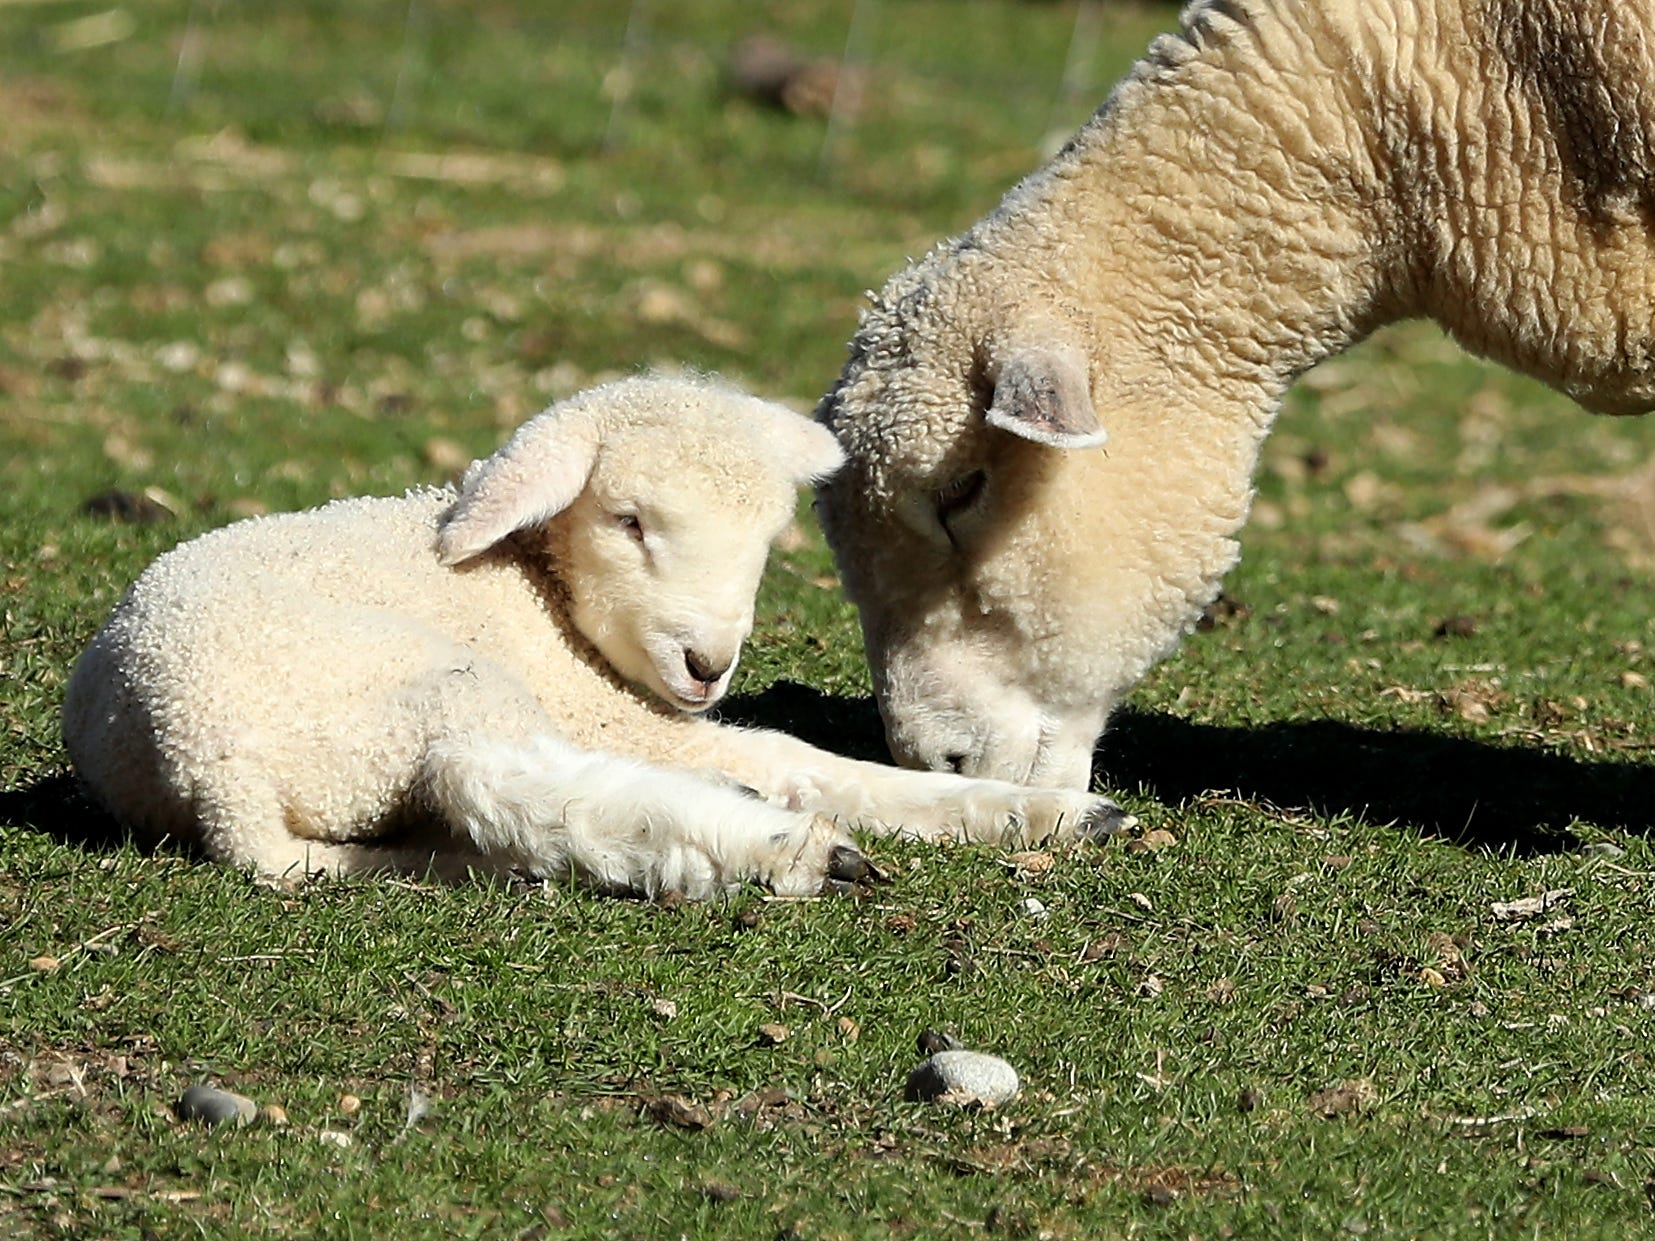 Lambs frolic in their pasture at Scandia Creek Farm in Pouslbo on March 19, 2019.